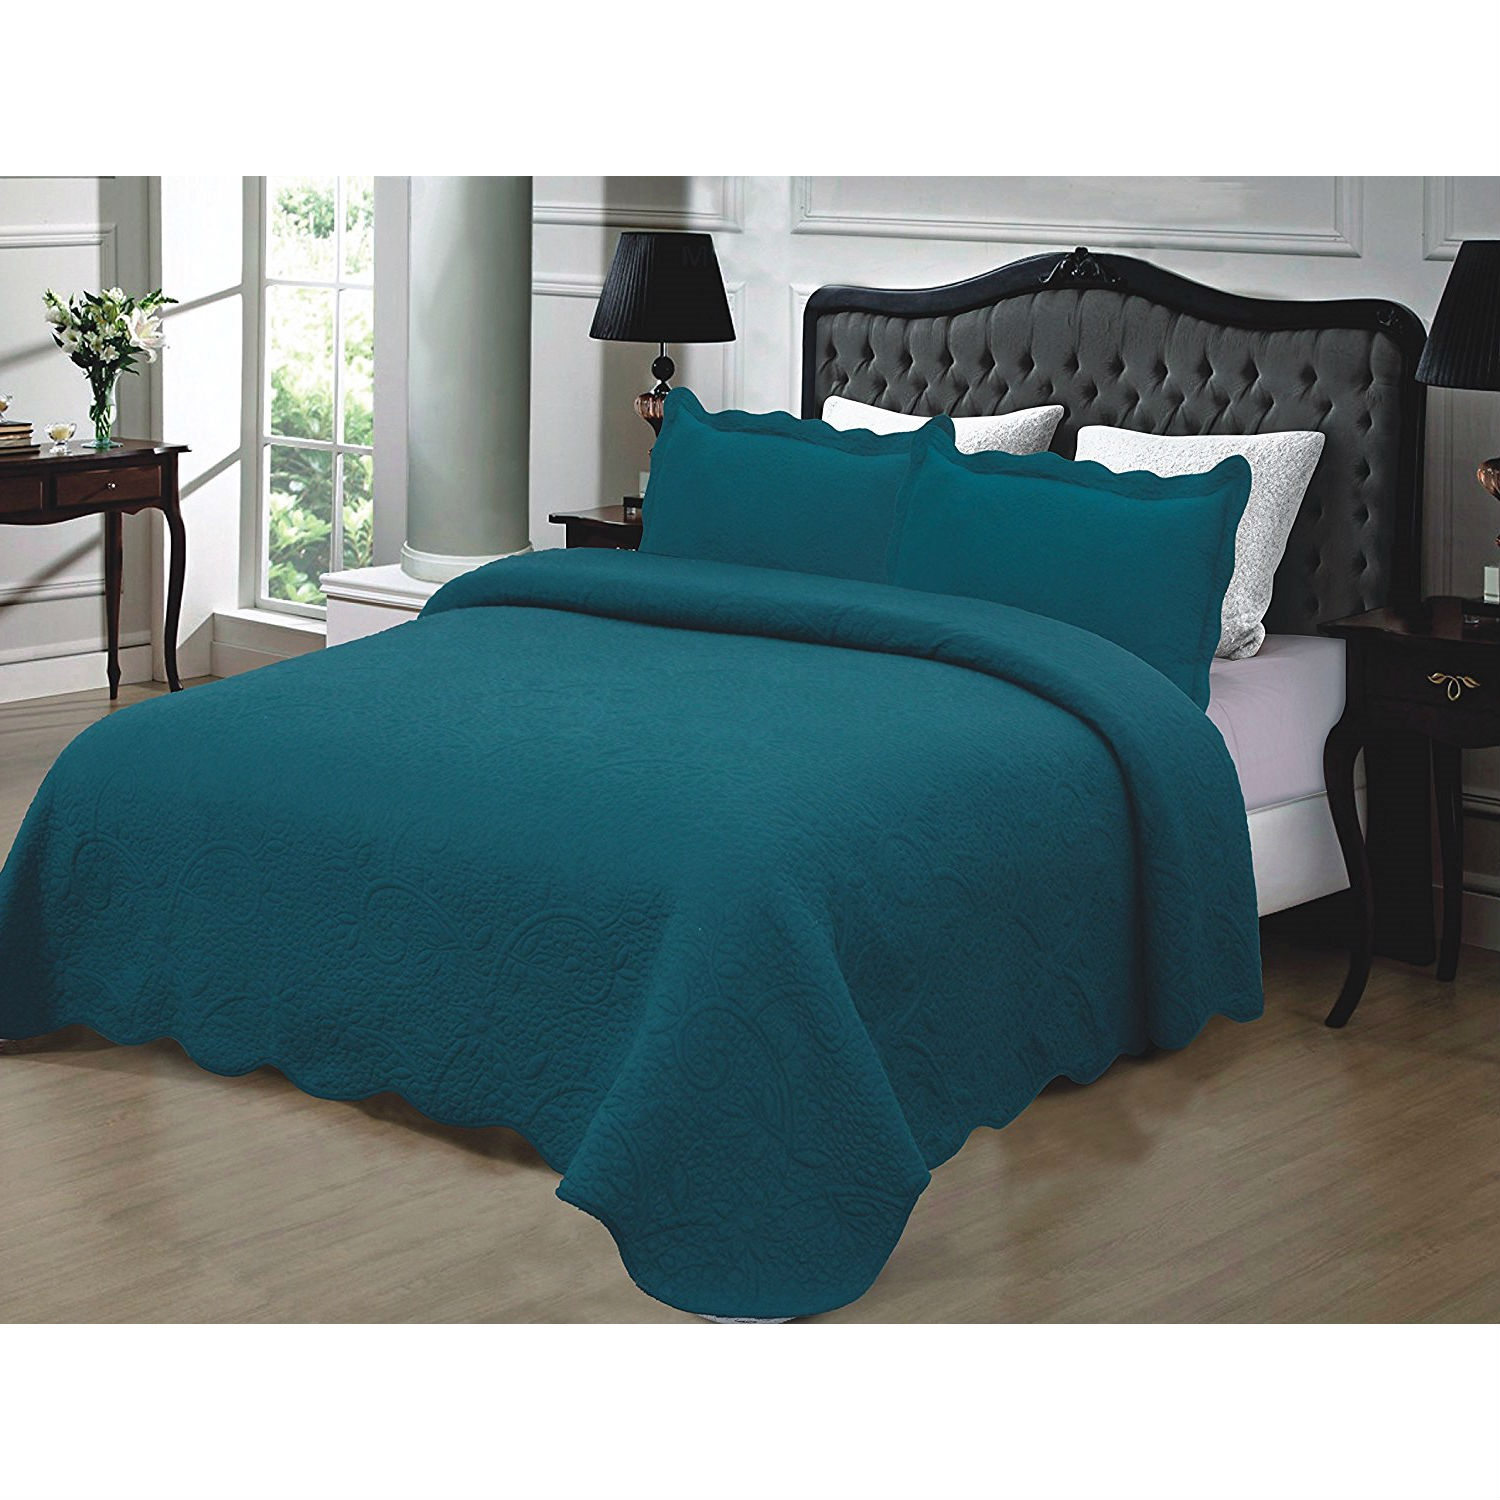 California King 3 Piece 100 Cotton Quilted Bedspread With Shams In